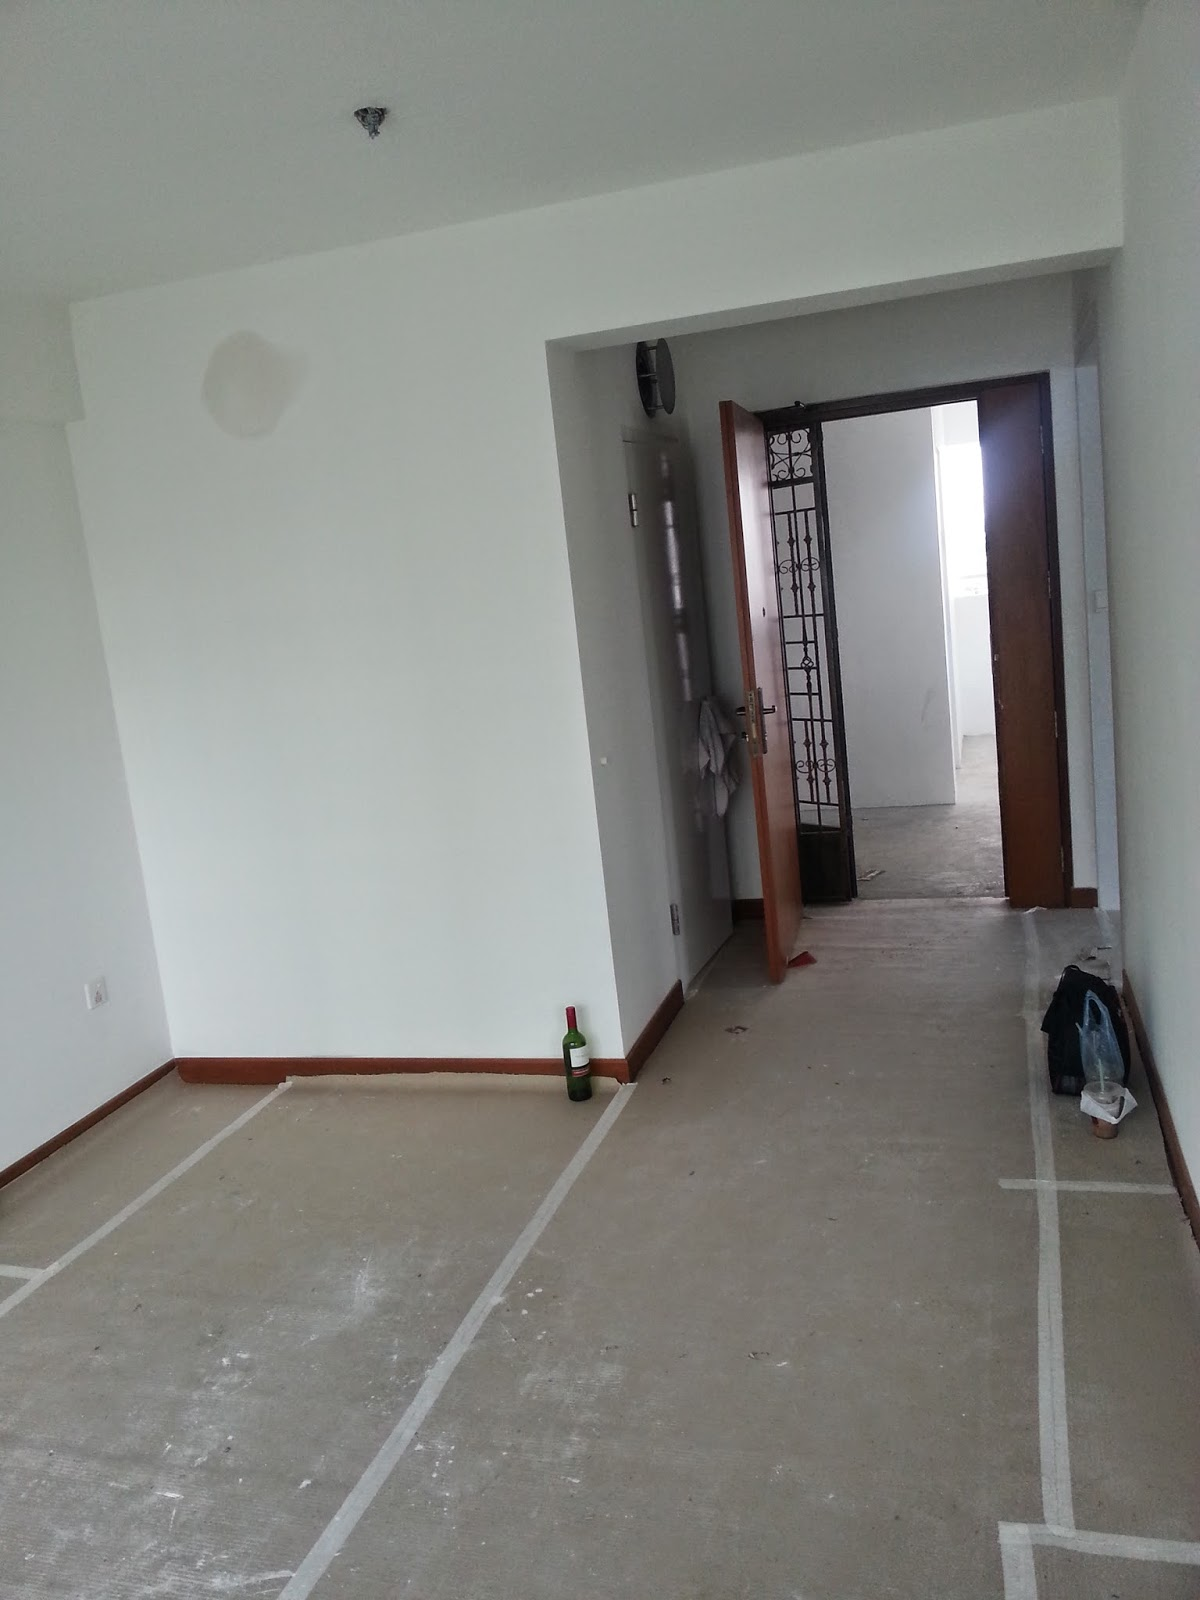 HDB 2 room BTO renovation small space ,big ideas: HDB 2 room BTO ...